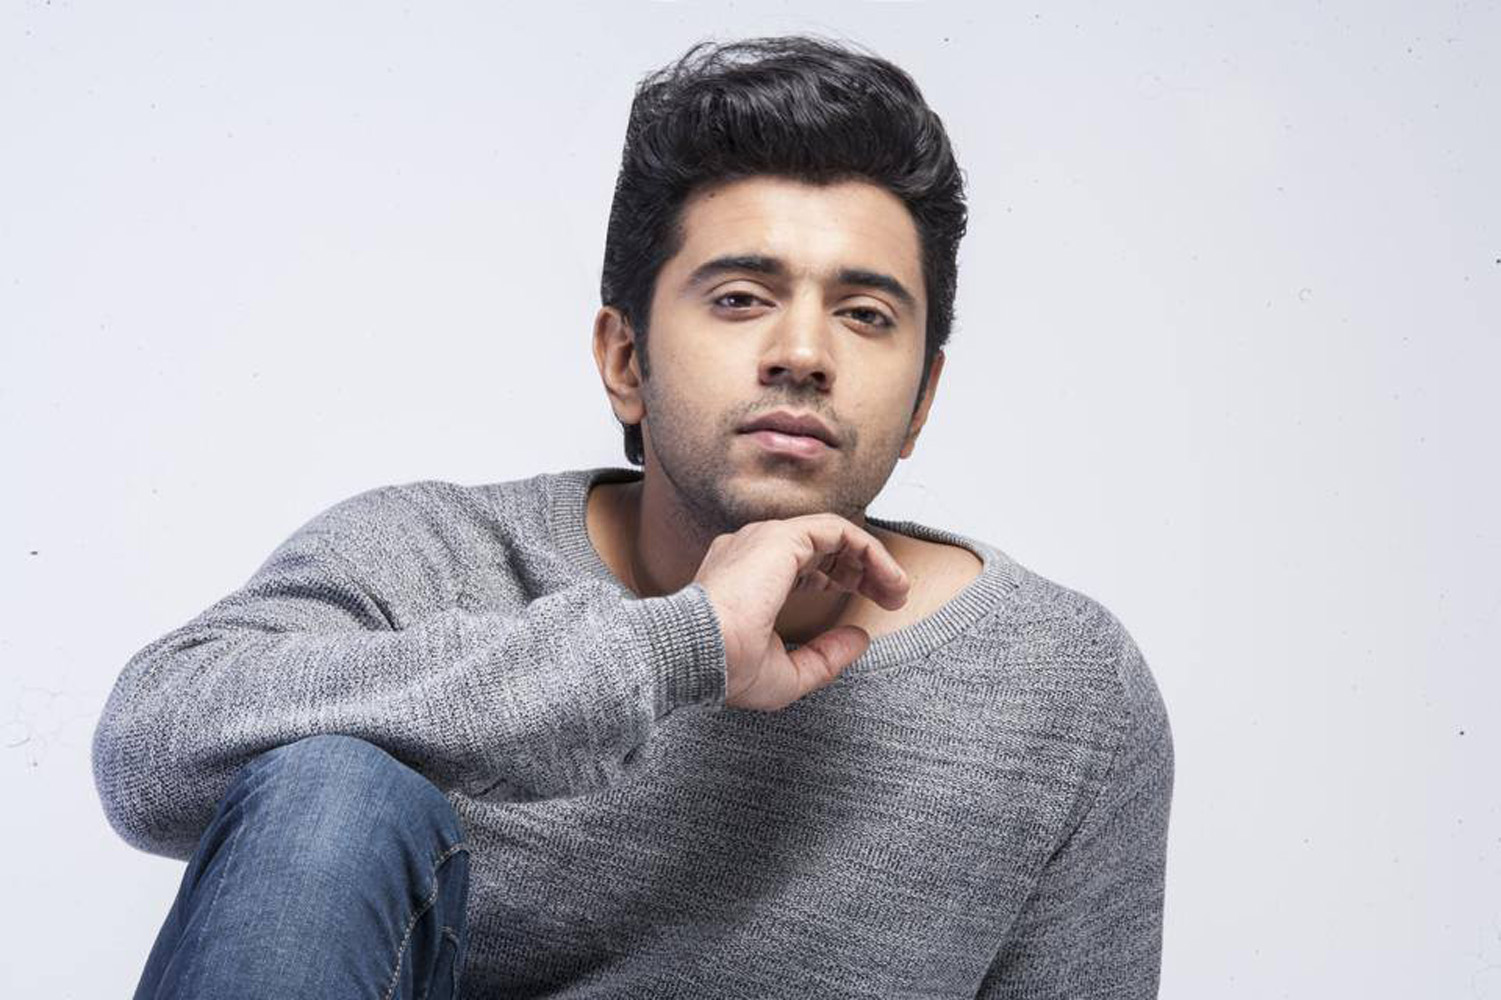 http://onlookersmedia.in/wp-content/uploads/2015/04/Nivin-Pauly-Stills-Images-Photos-Malayalam-Movie-2015-Onlookers-Media-23.jpg